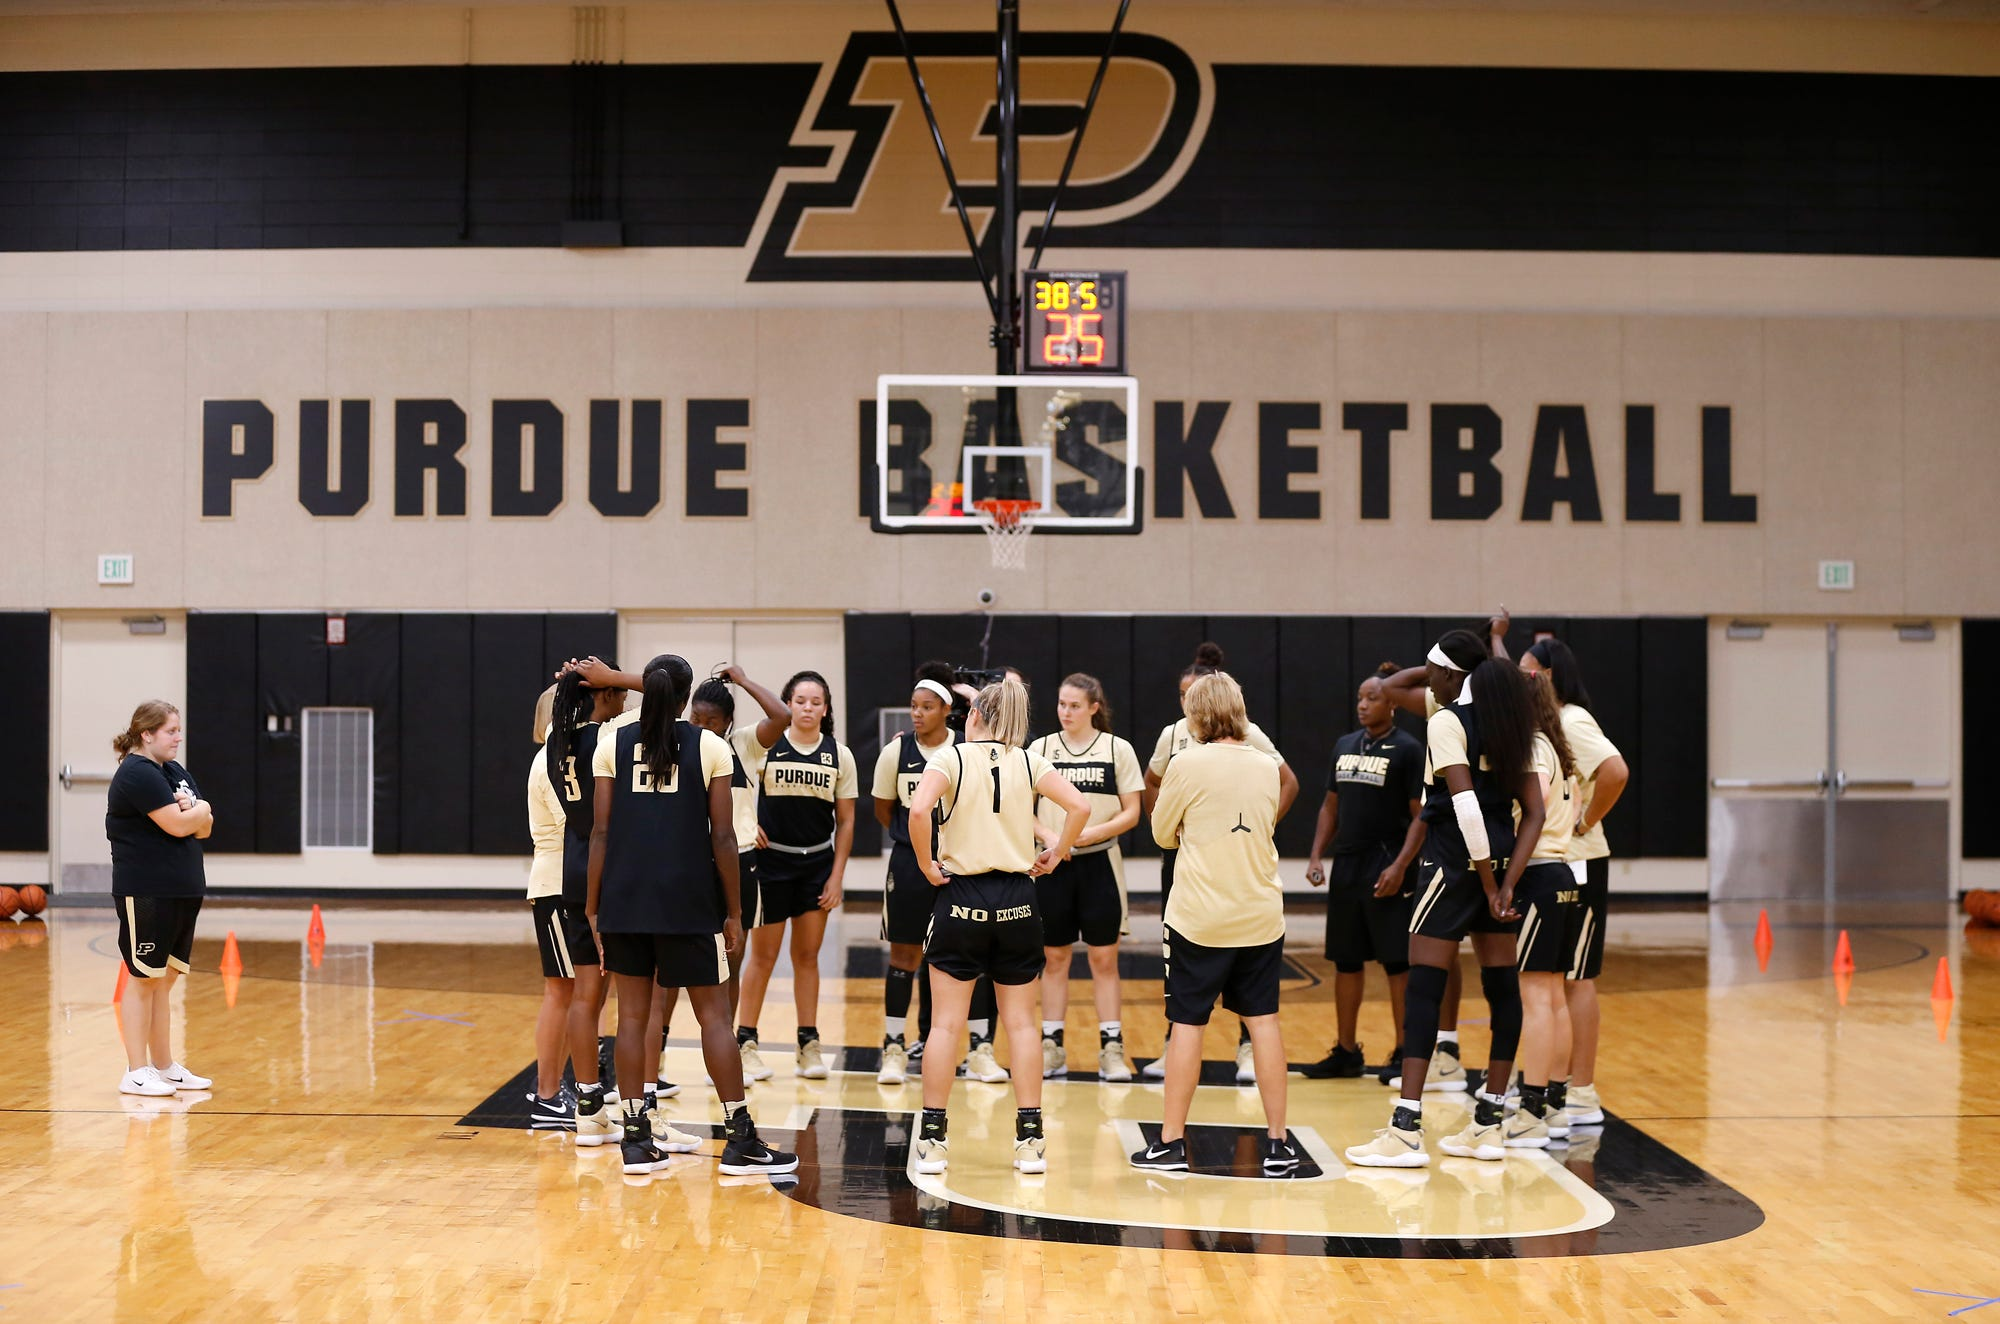 Players assemble with head coach Sharon Versyp for the first practice of the season for Purdue women's basketball Wednesday, September 26, 2018, at Cardinal Court in Mackey Arena.